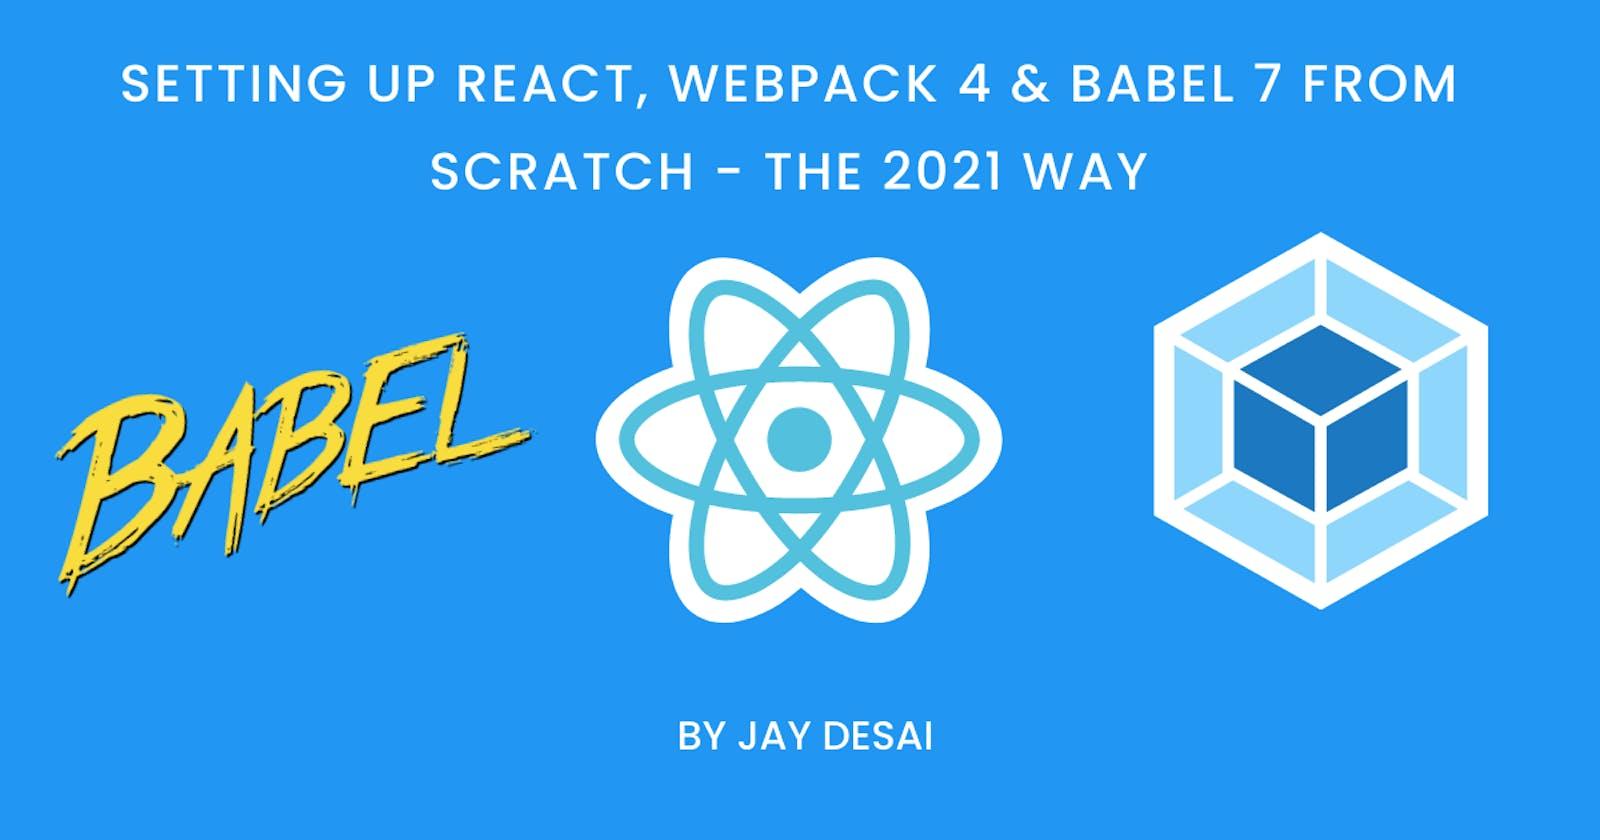 Setting Up React, Webpack 4 & Babel 7 from scratch — 2021